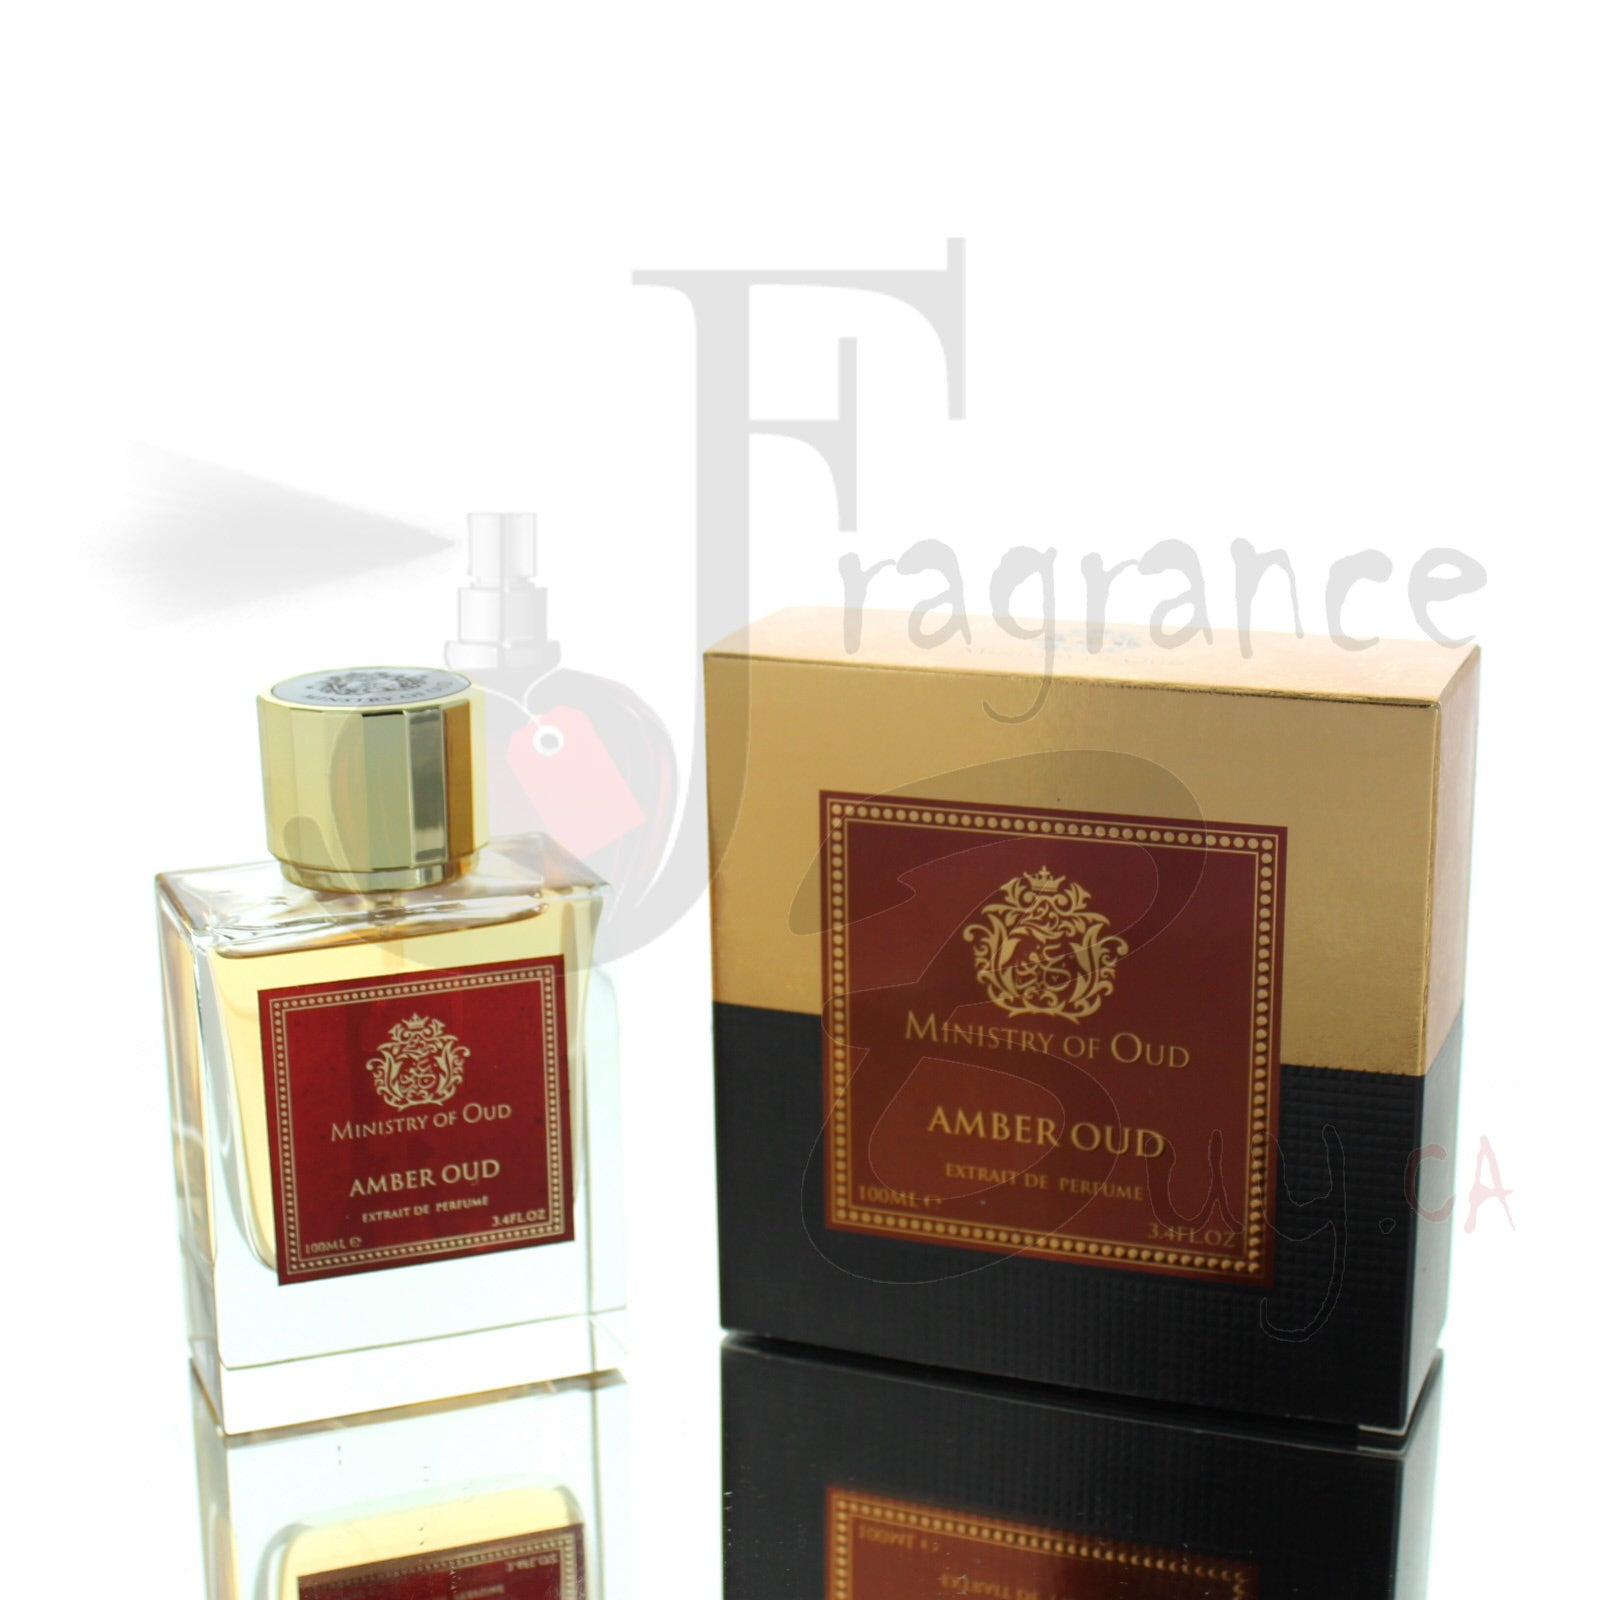 Ministry Of Oud Amber Oud For Man/Woman